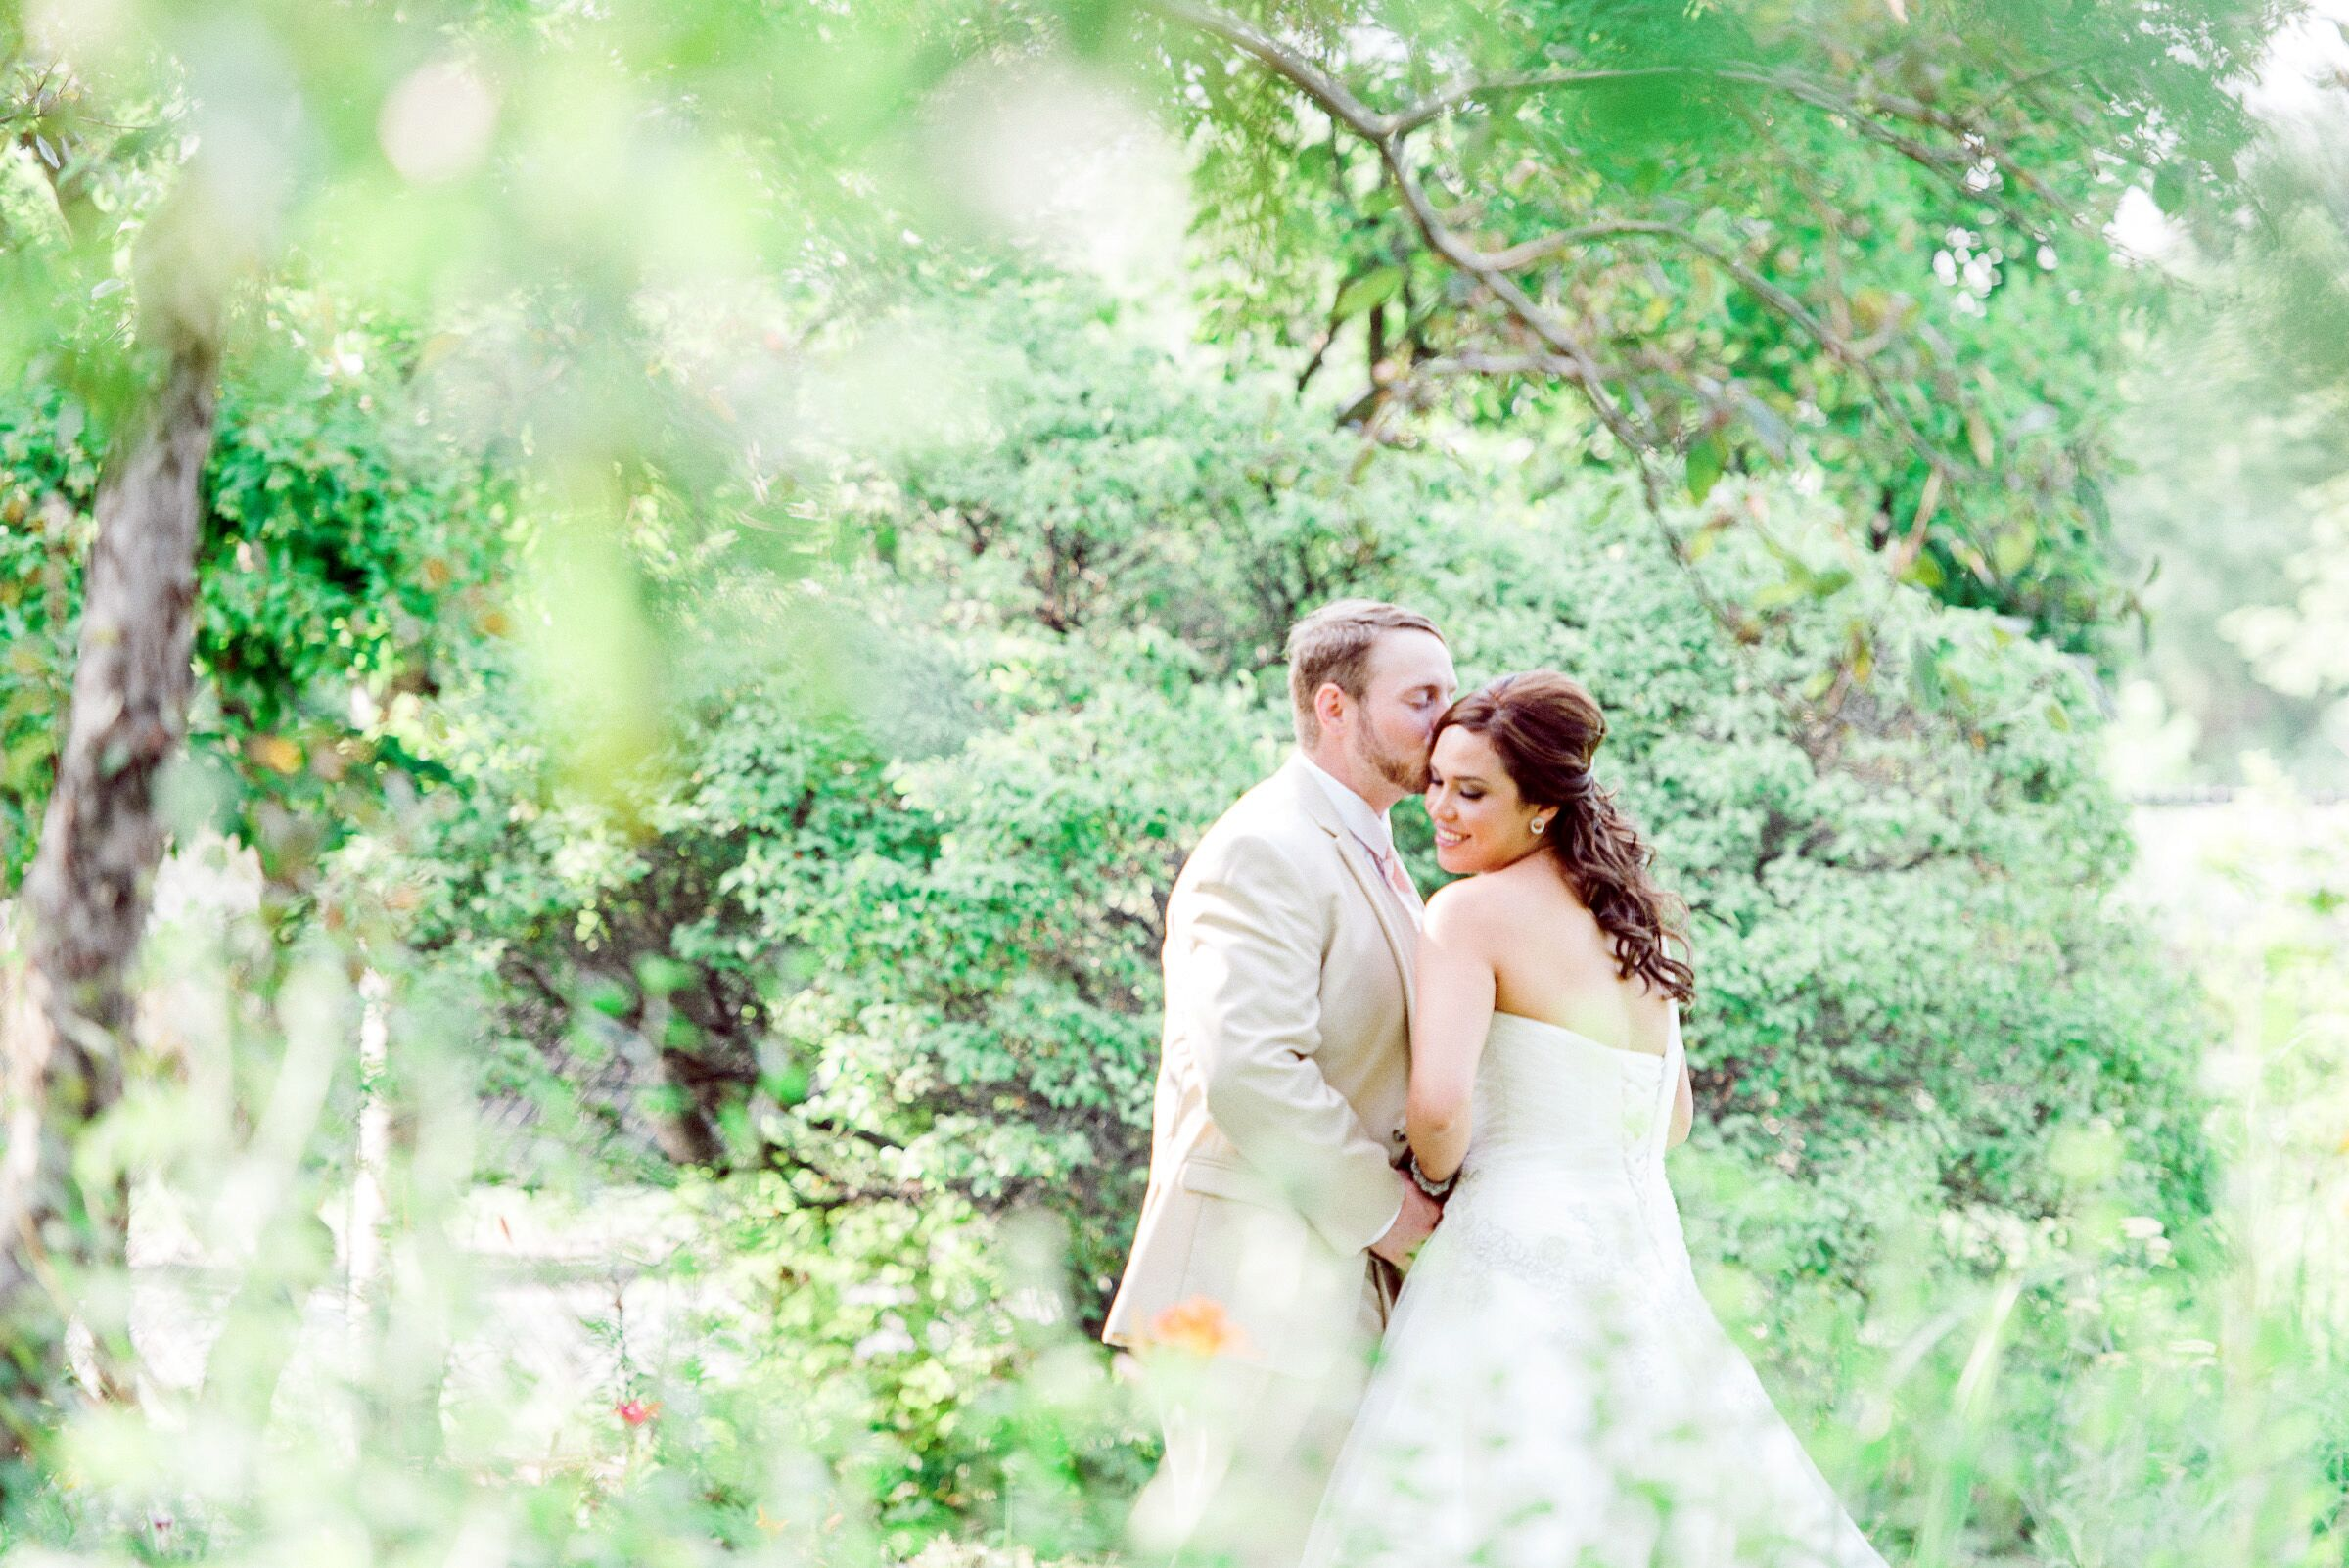 A Backyard Garden Wedding at a Private Residence in Sherwood Park, Alberta